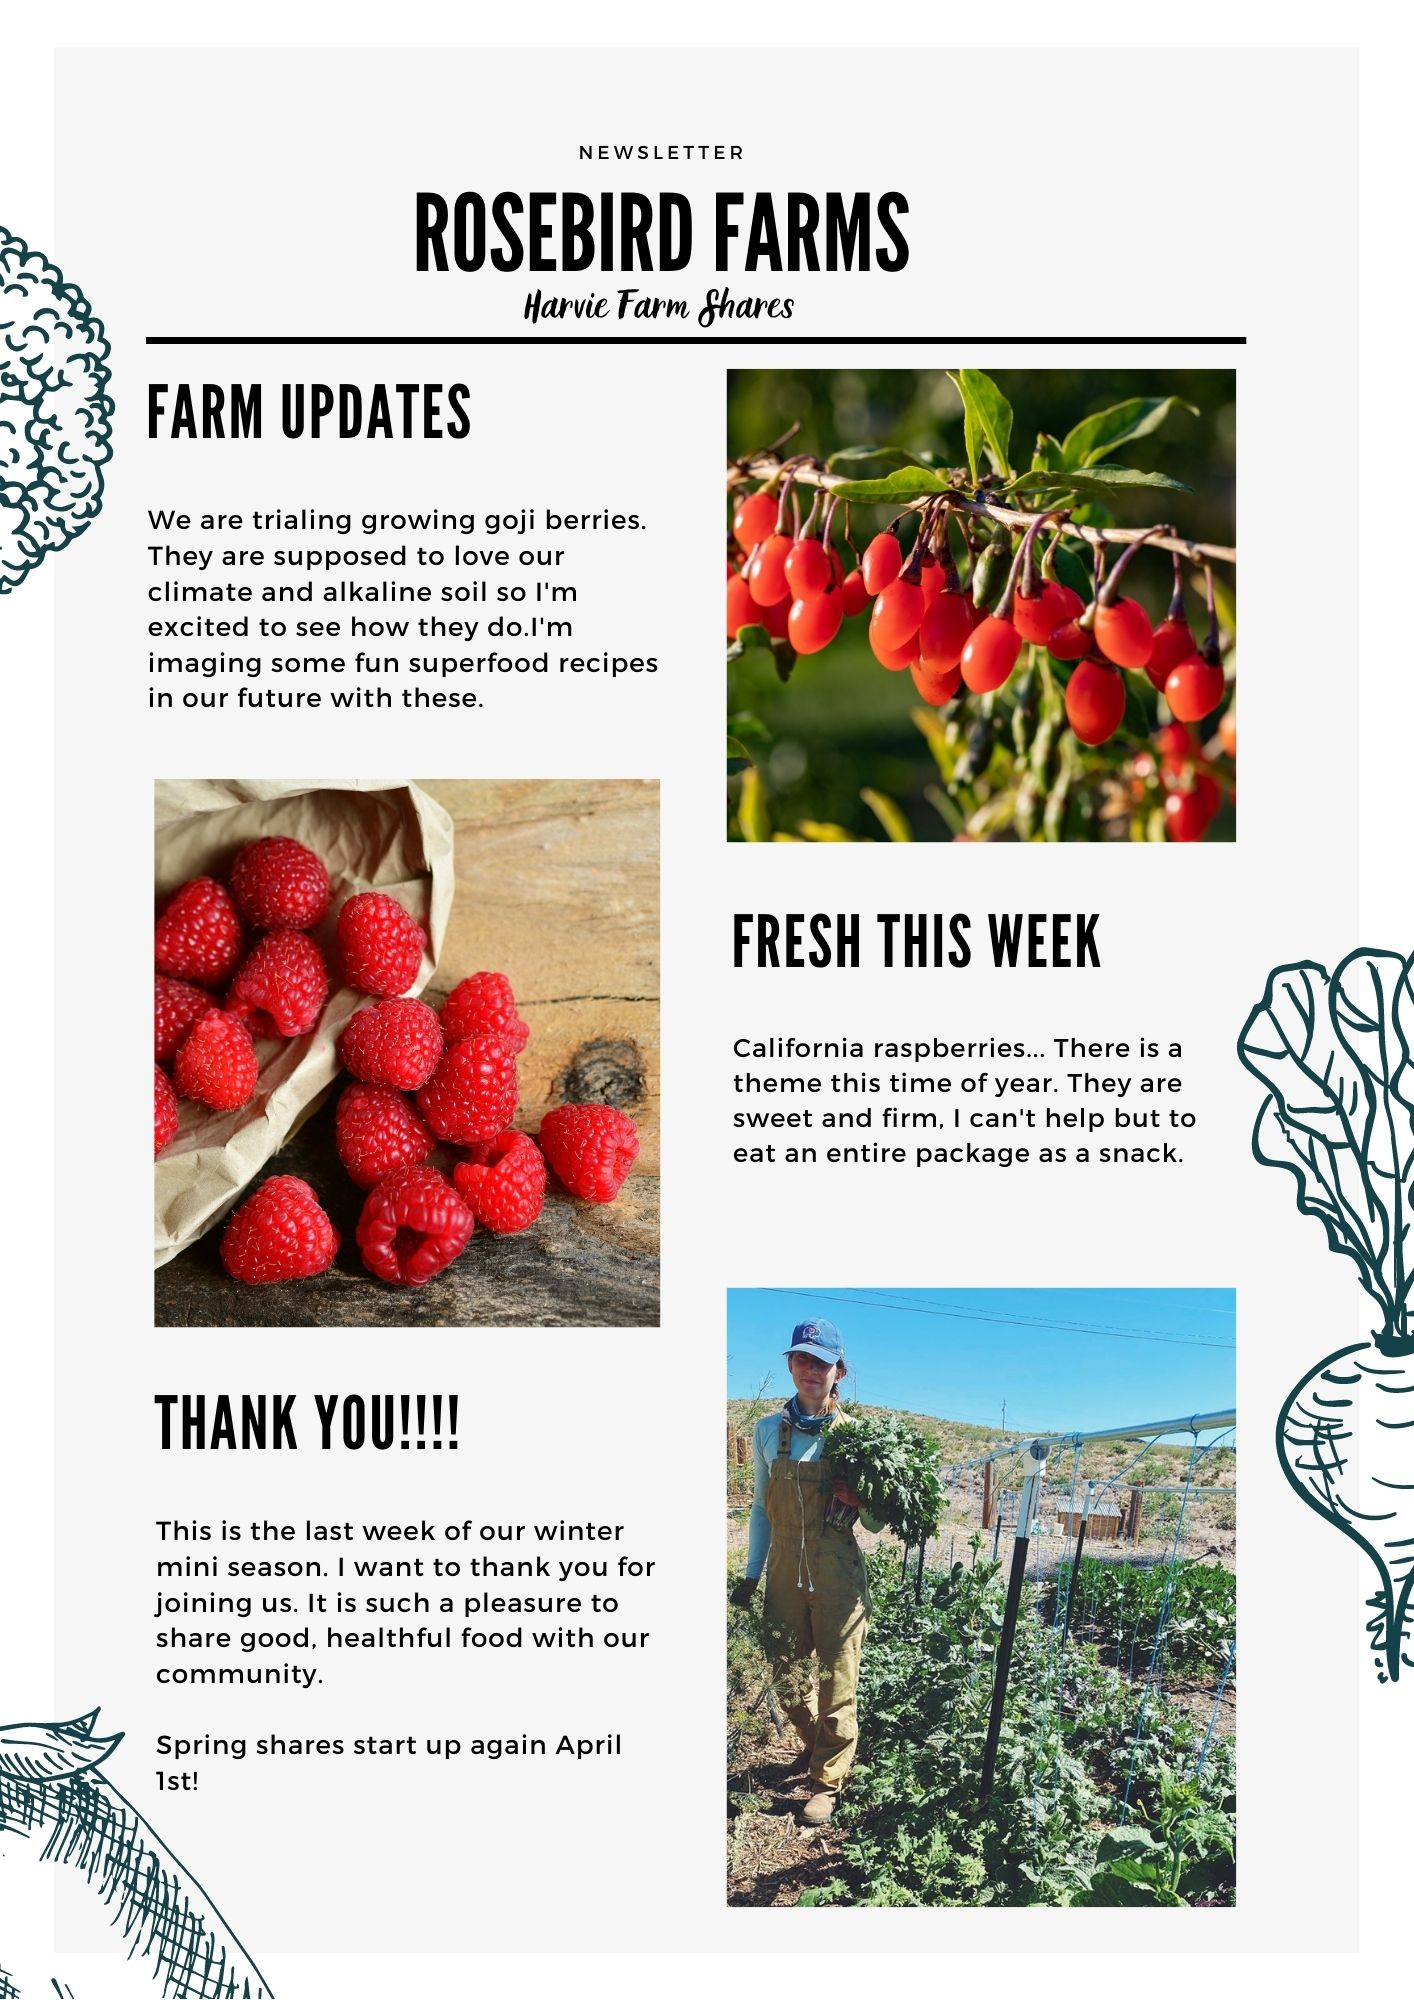 Farm Happenings for March 11, 2021